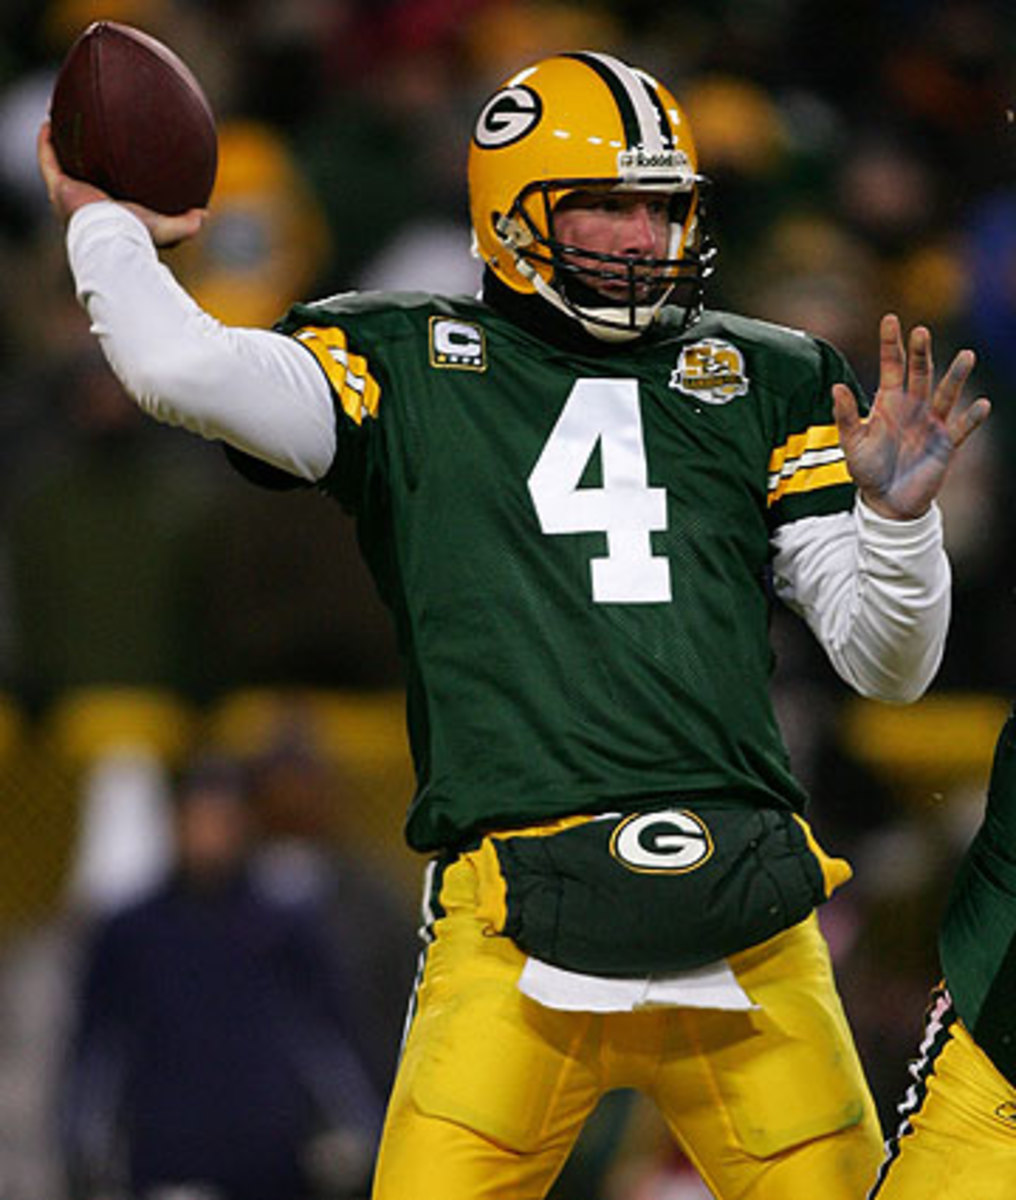 Brett Favre will be eligible for the hall of fame next year. (Jonathan Ferrey/Getty Images)